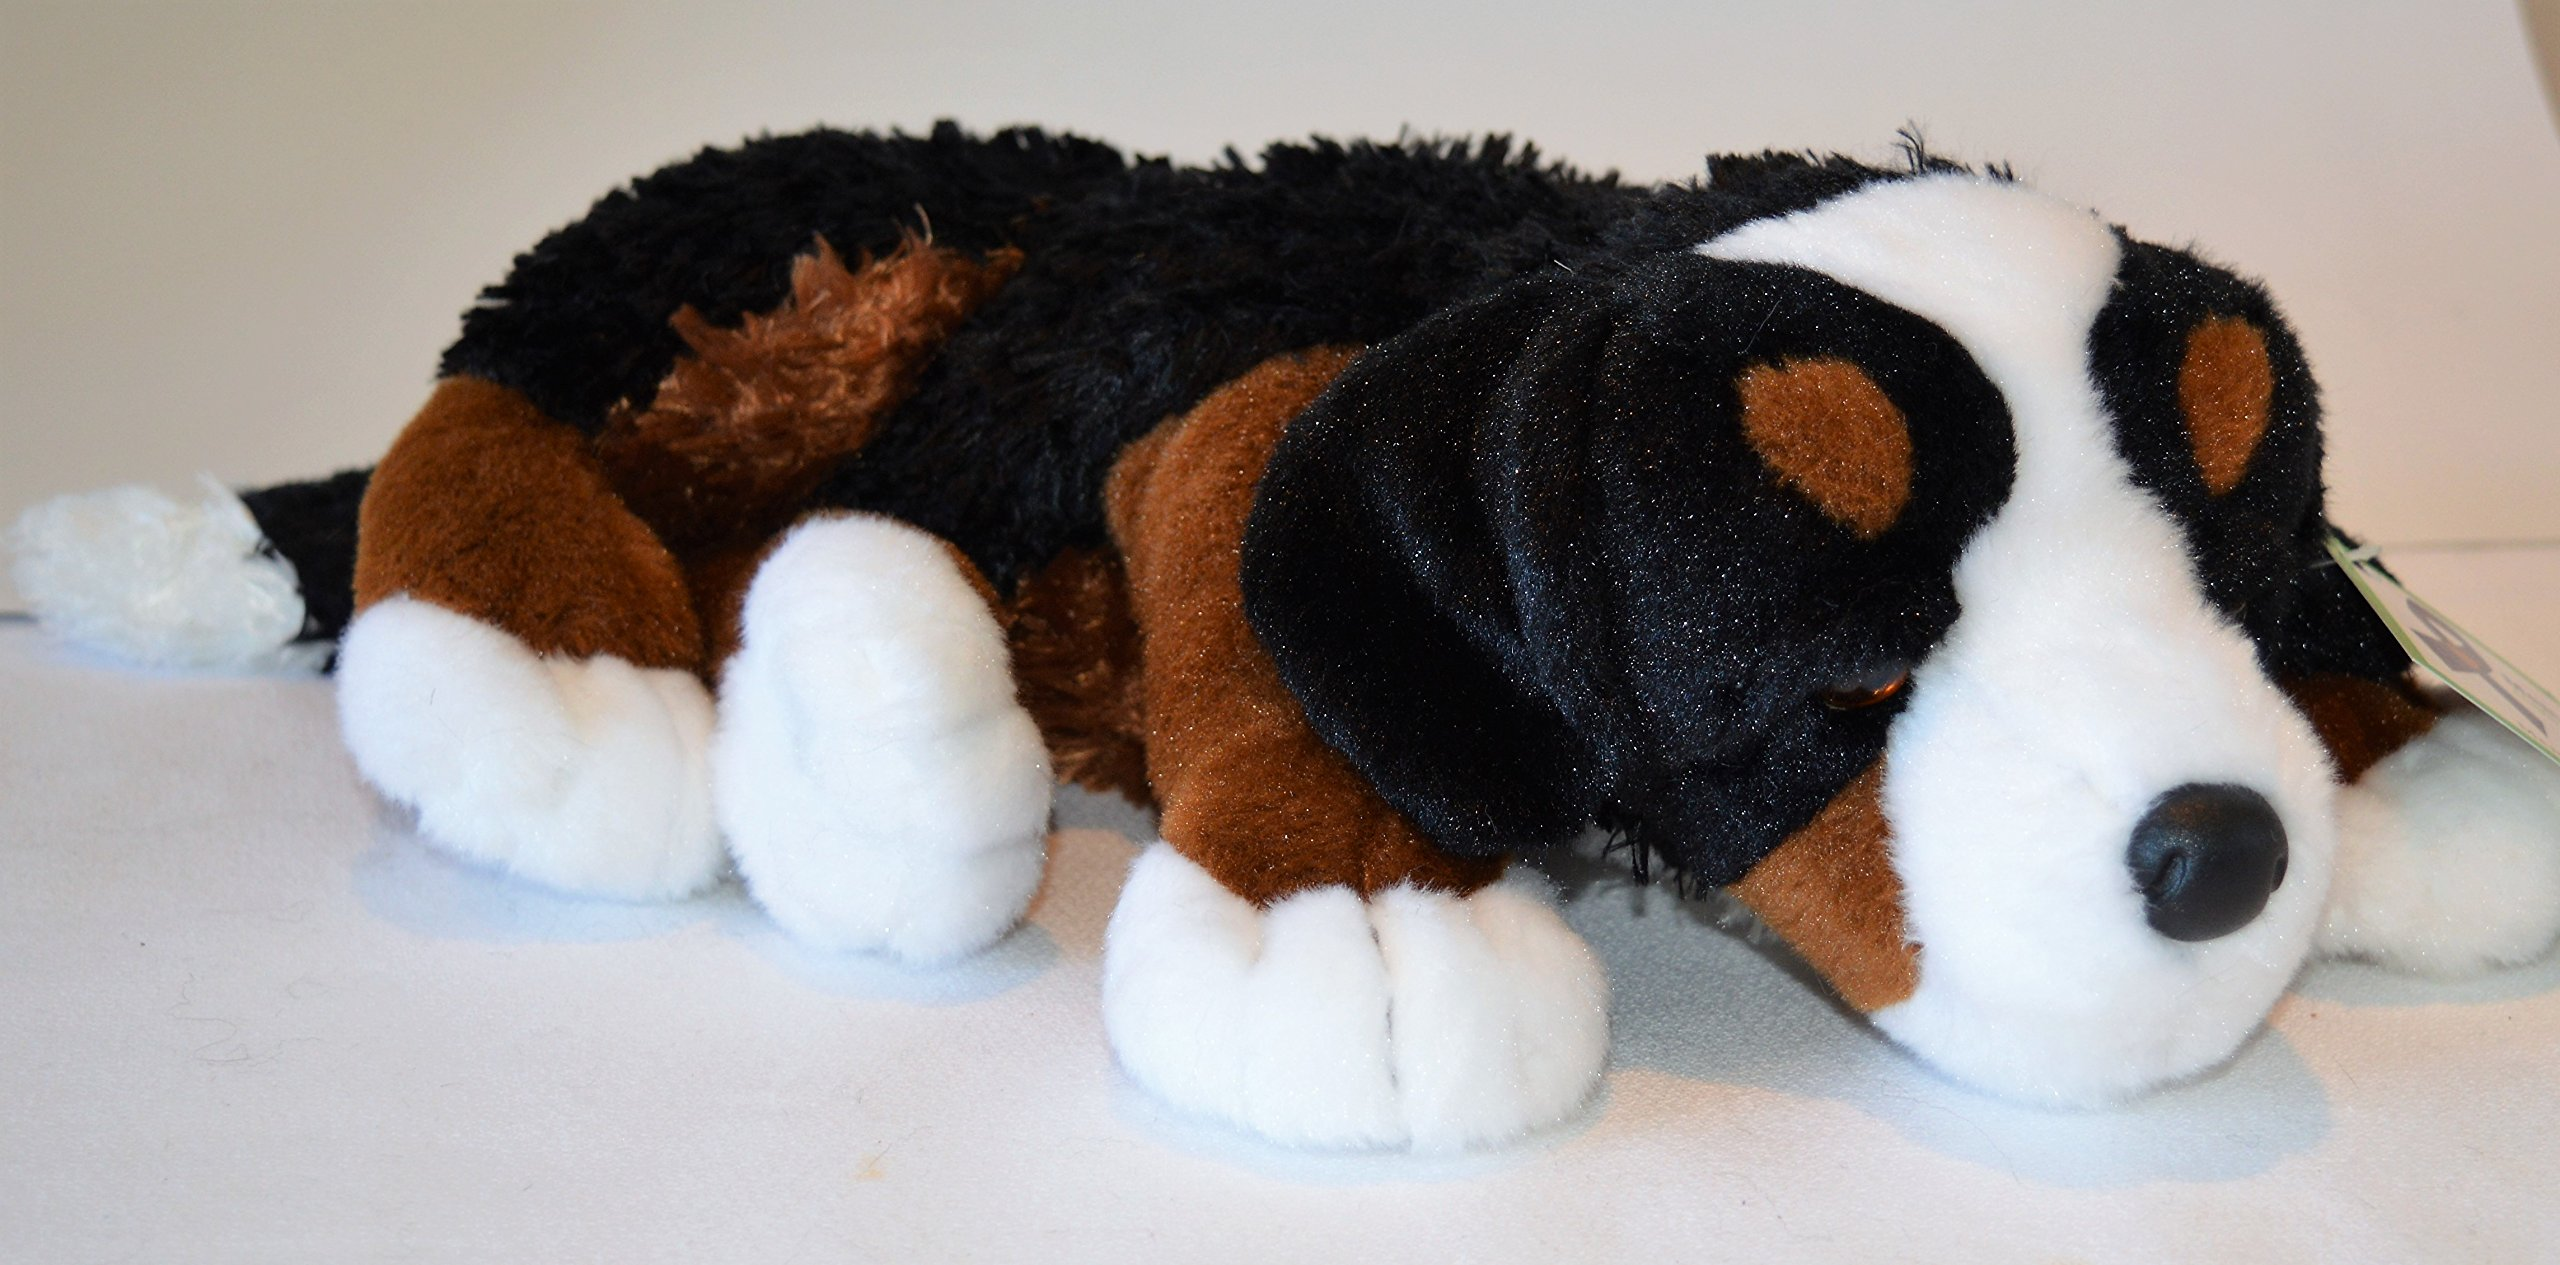 Reclining Bernese Mountain Puppy - Stuffed Animal Therapy for People with Memory Loss from Aging and Caregivers